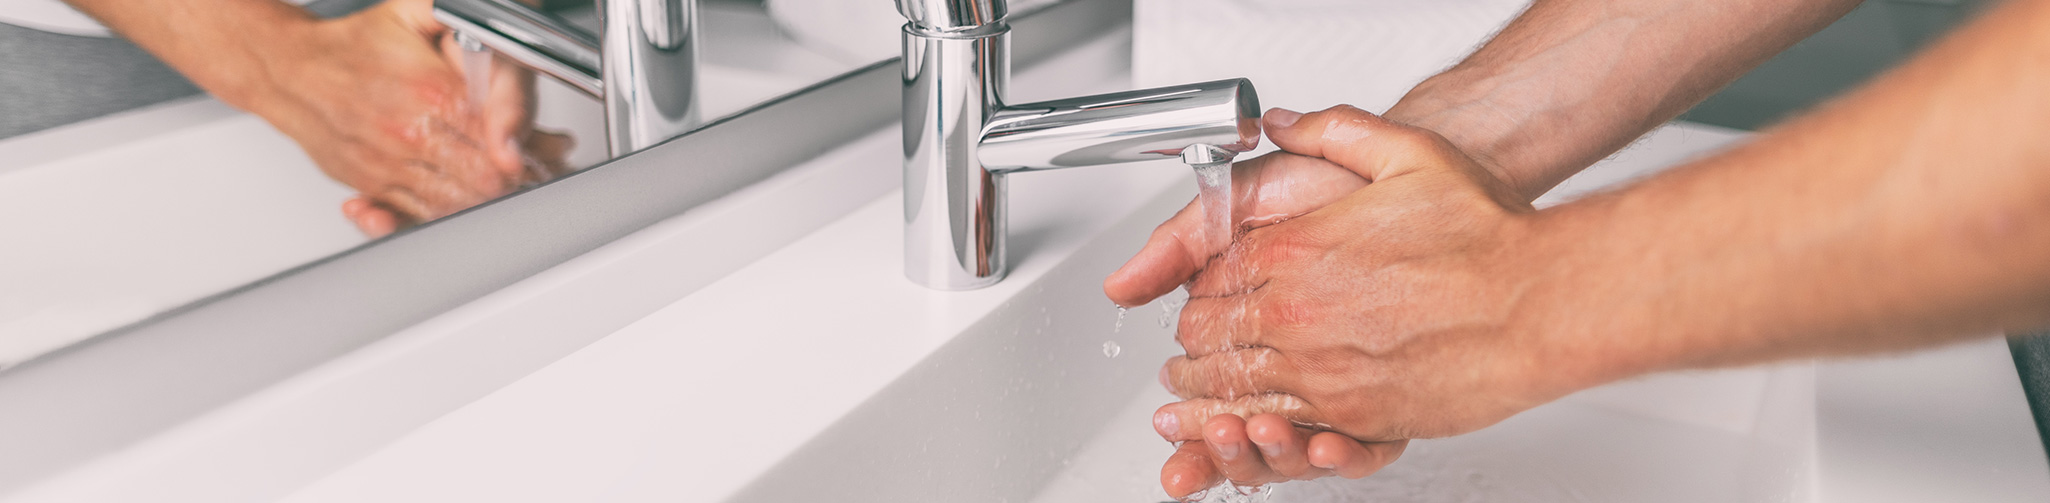 Person washing their hands over a sink.